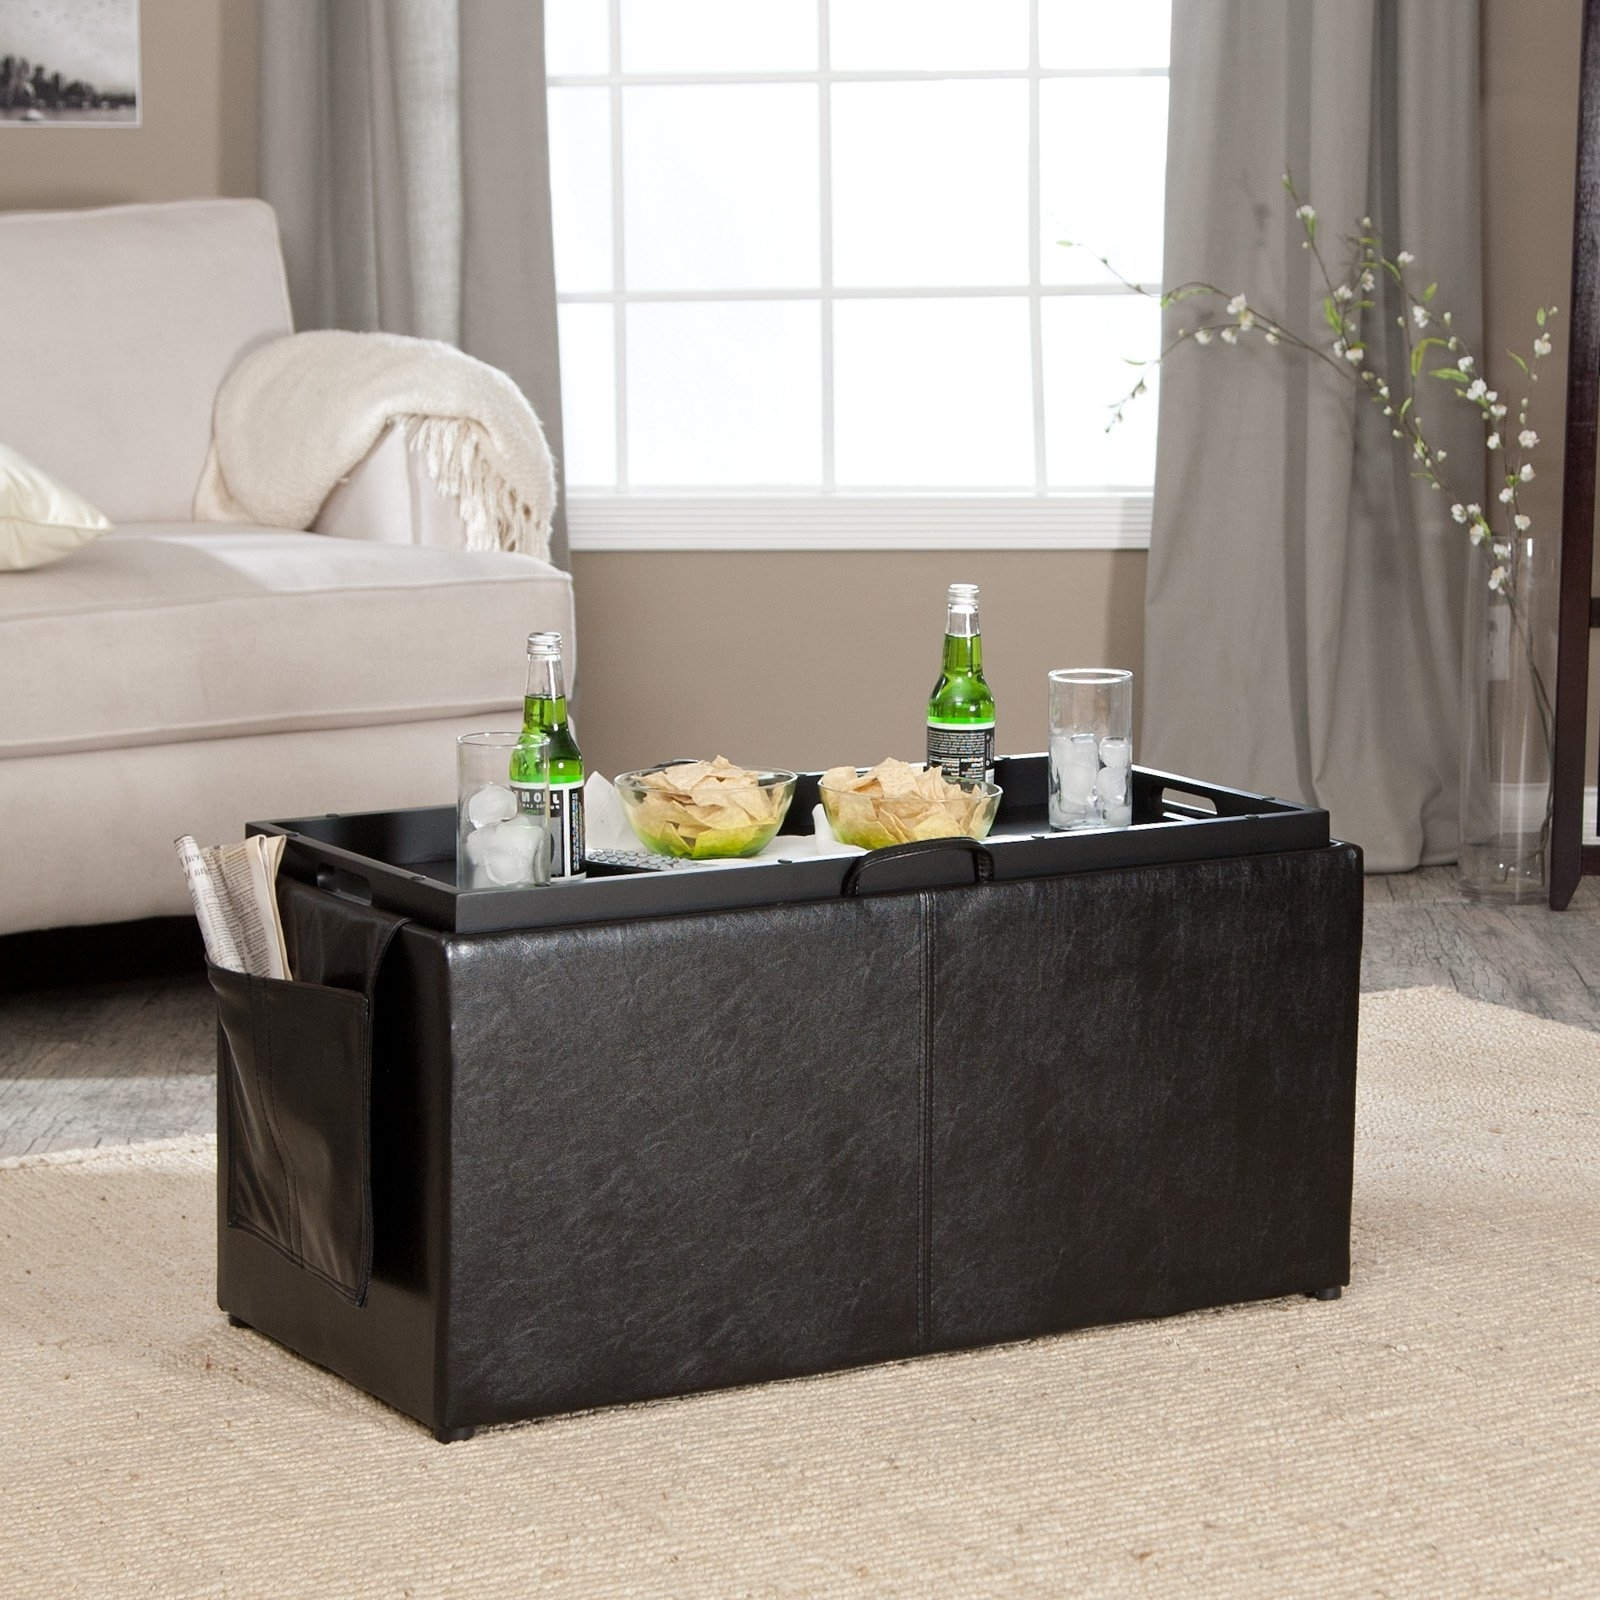 Trendy Ottomans With Tray With Furniture : Hartley Coffee Table Storage Ottoman With Tray Side (View 18 of 20)